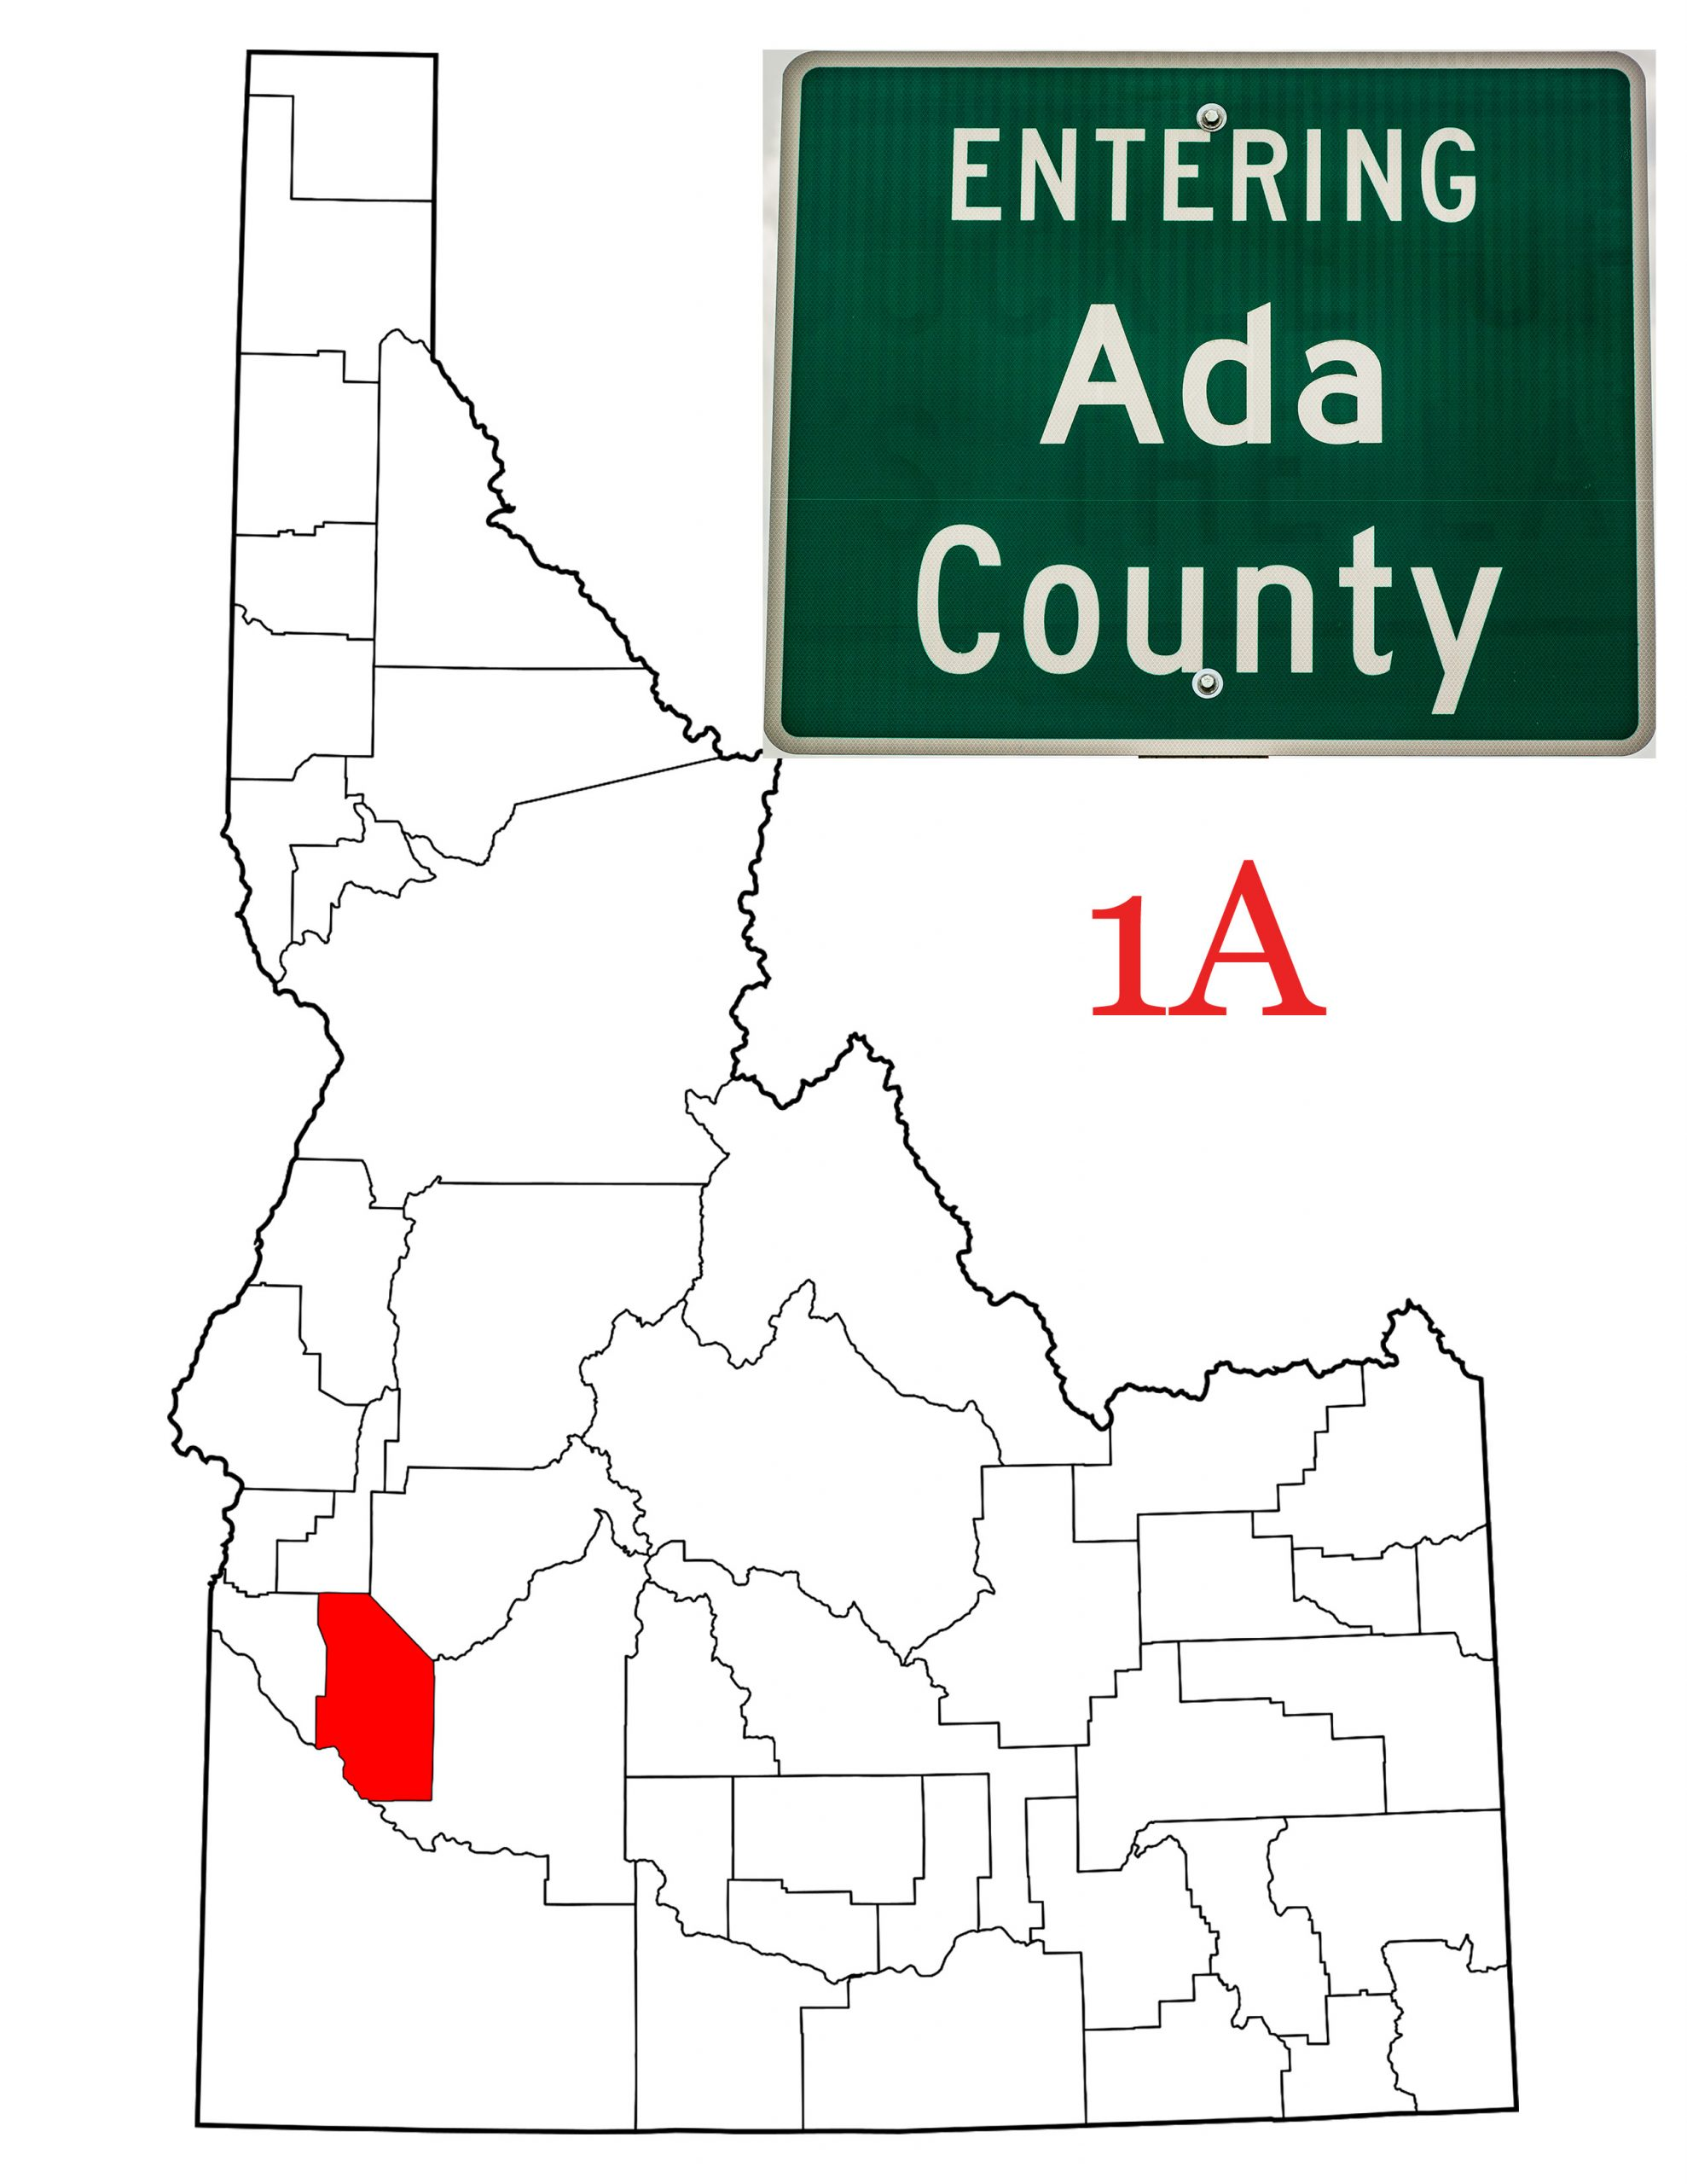 a map of the state of Idaho showing Ada County